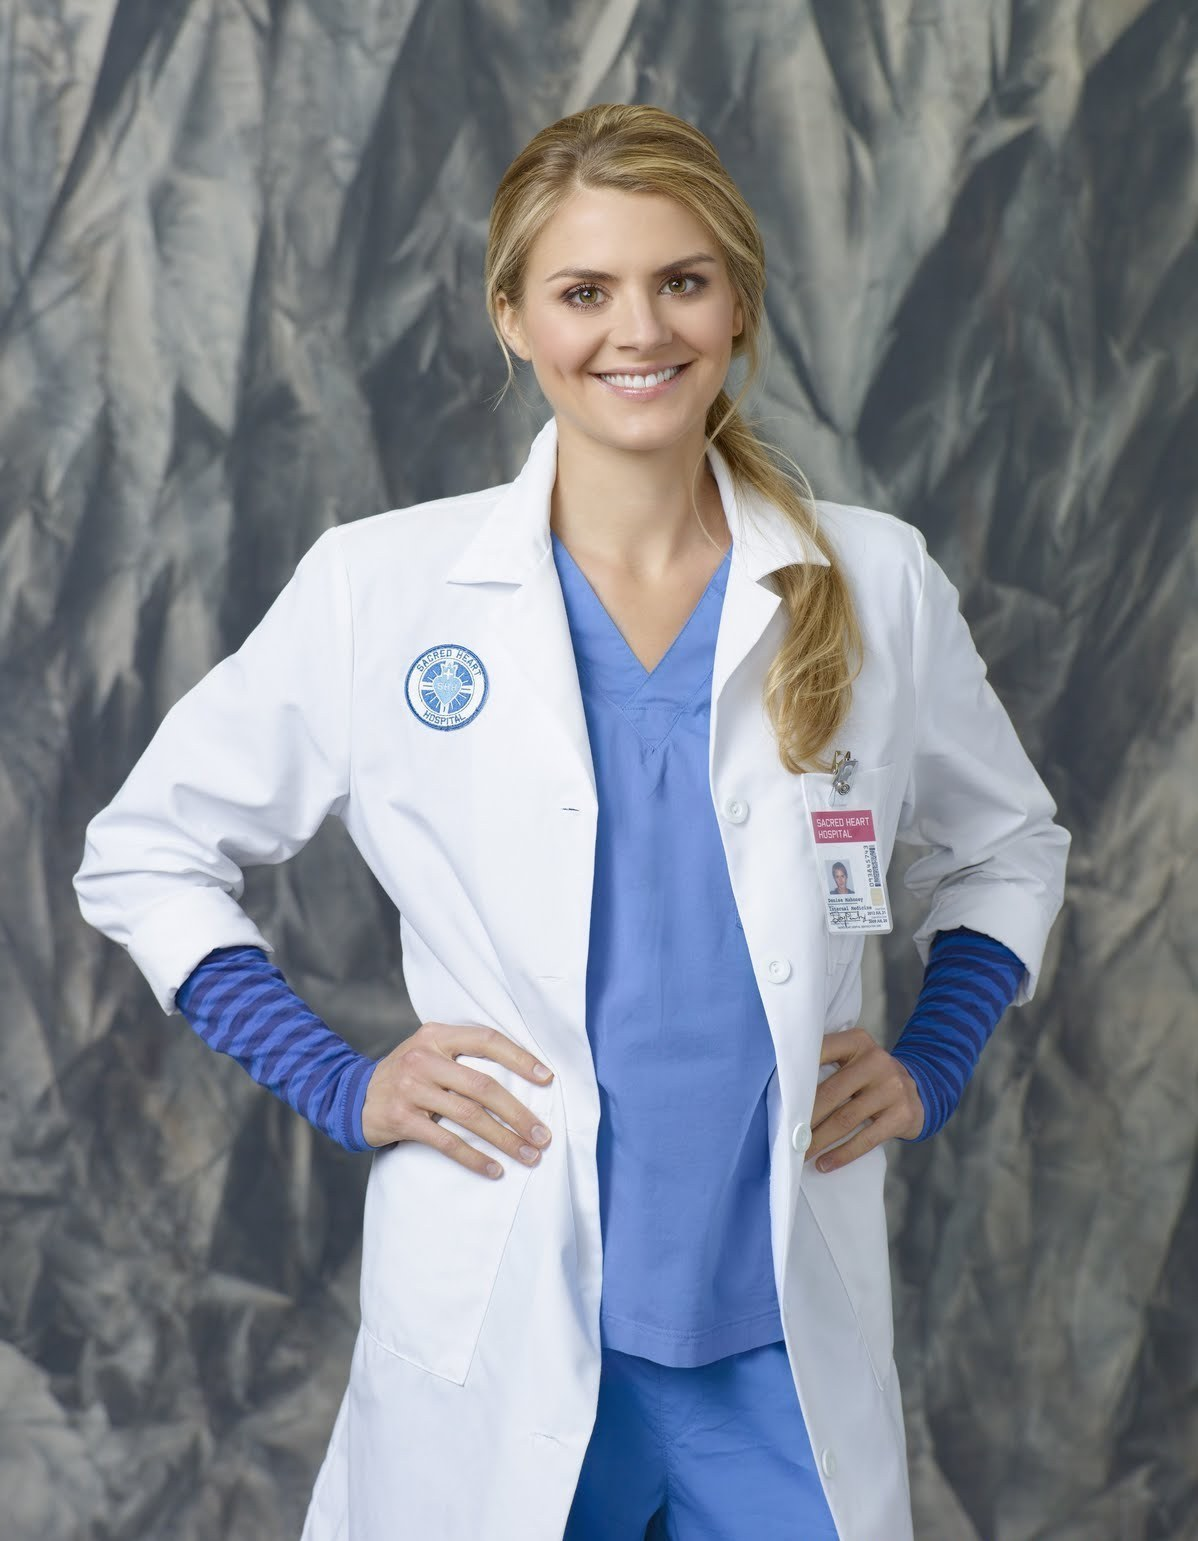 Dr Denise Mahoney images Eliza Coupe as Dr Denise Mahoney ~ Season 9 Promotional Photoshoot HD wallpaper and background photos